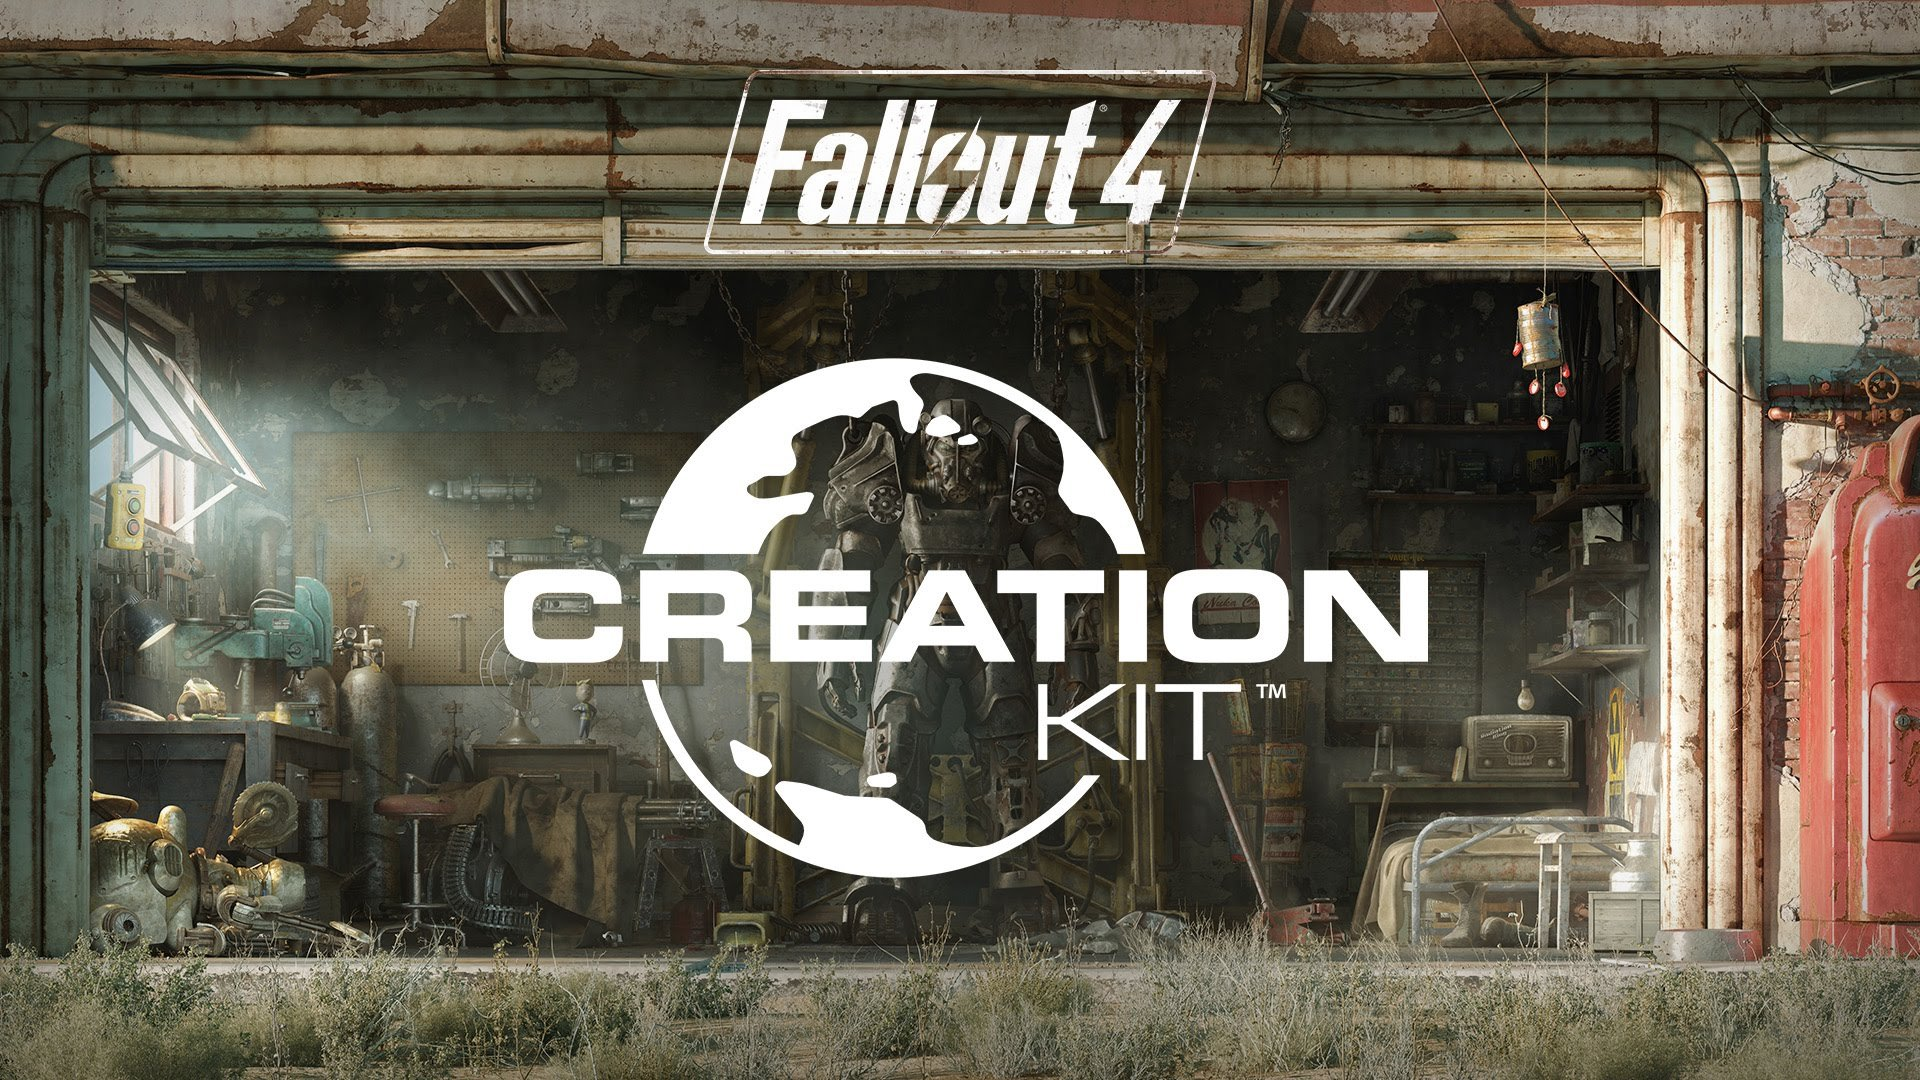 Fallout 4 Creation Kit launches, mods coming to consoles soon